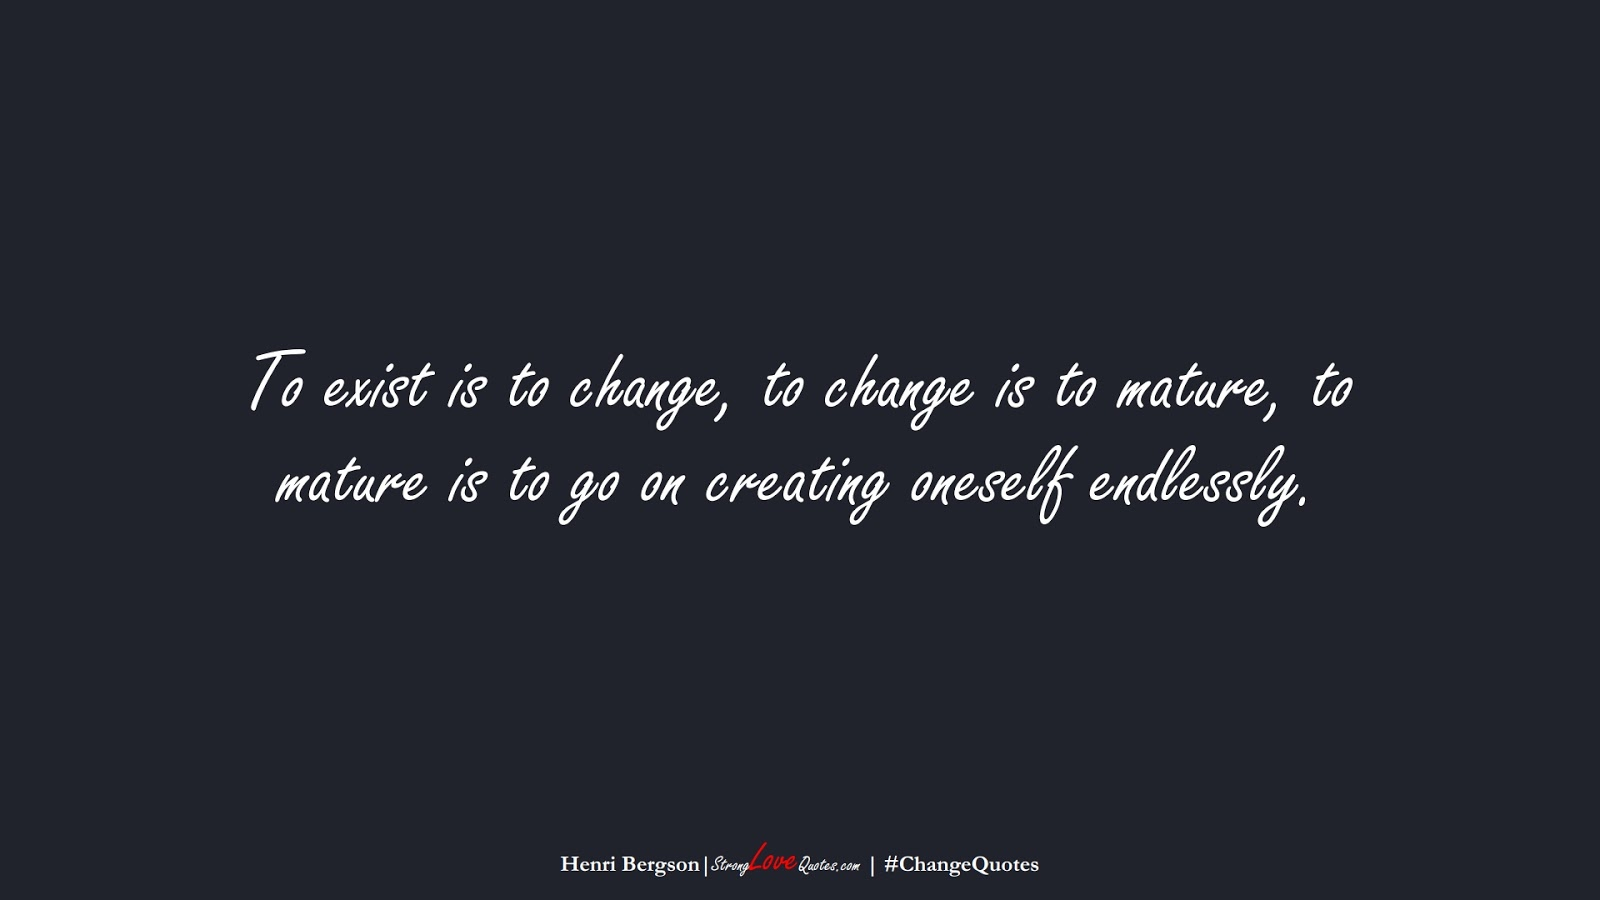 To exist is to change, to change is to mature, to mature is to go on creating oneself endlessly. (Henri Bergson);  #ChangeQuotes